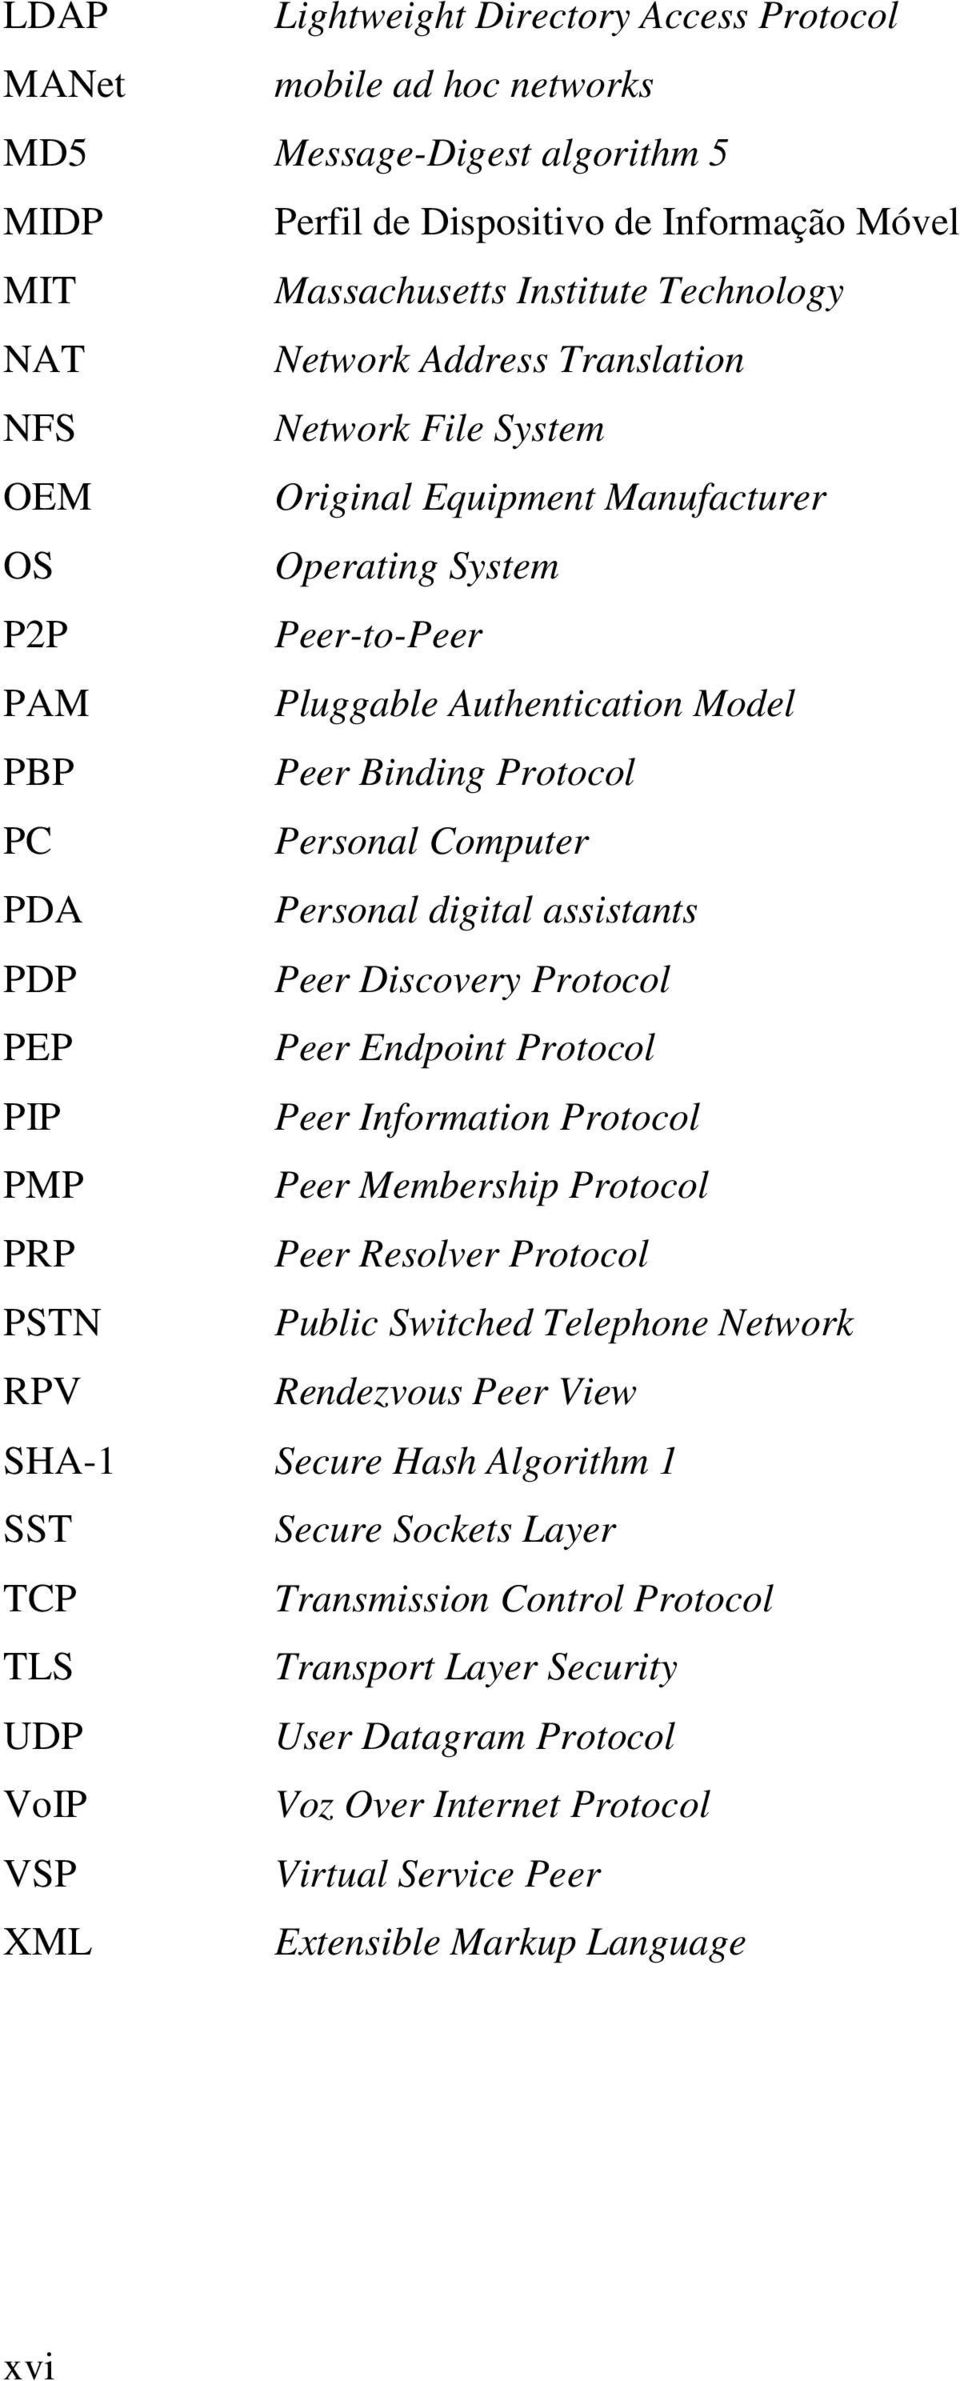 Computer PDA Personal digital assistants PDP Peer Discovery Protocol PEP Peer Endpoint Protocol PIP Peer Information Protocol PMP Peer Membership Protocol PRP Peer Resolver Protocol PSTN Public